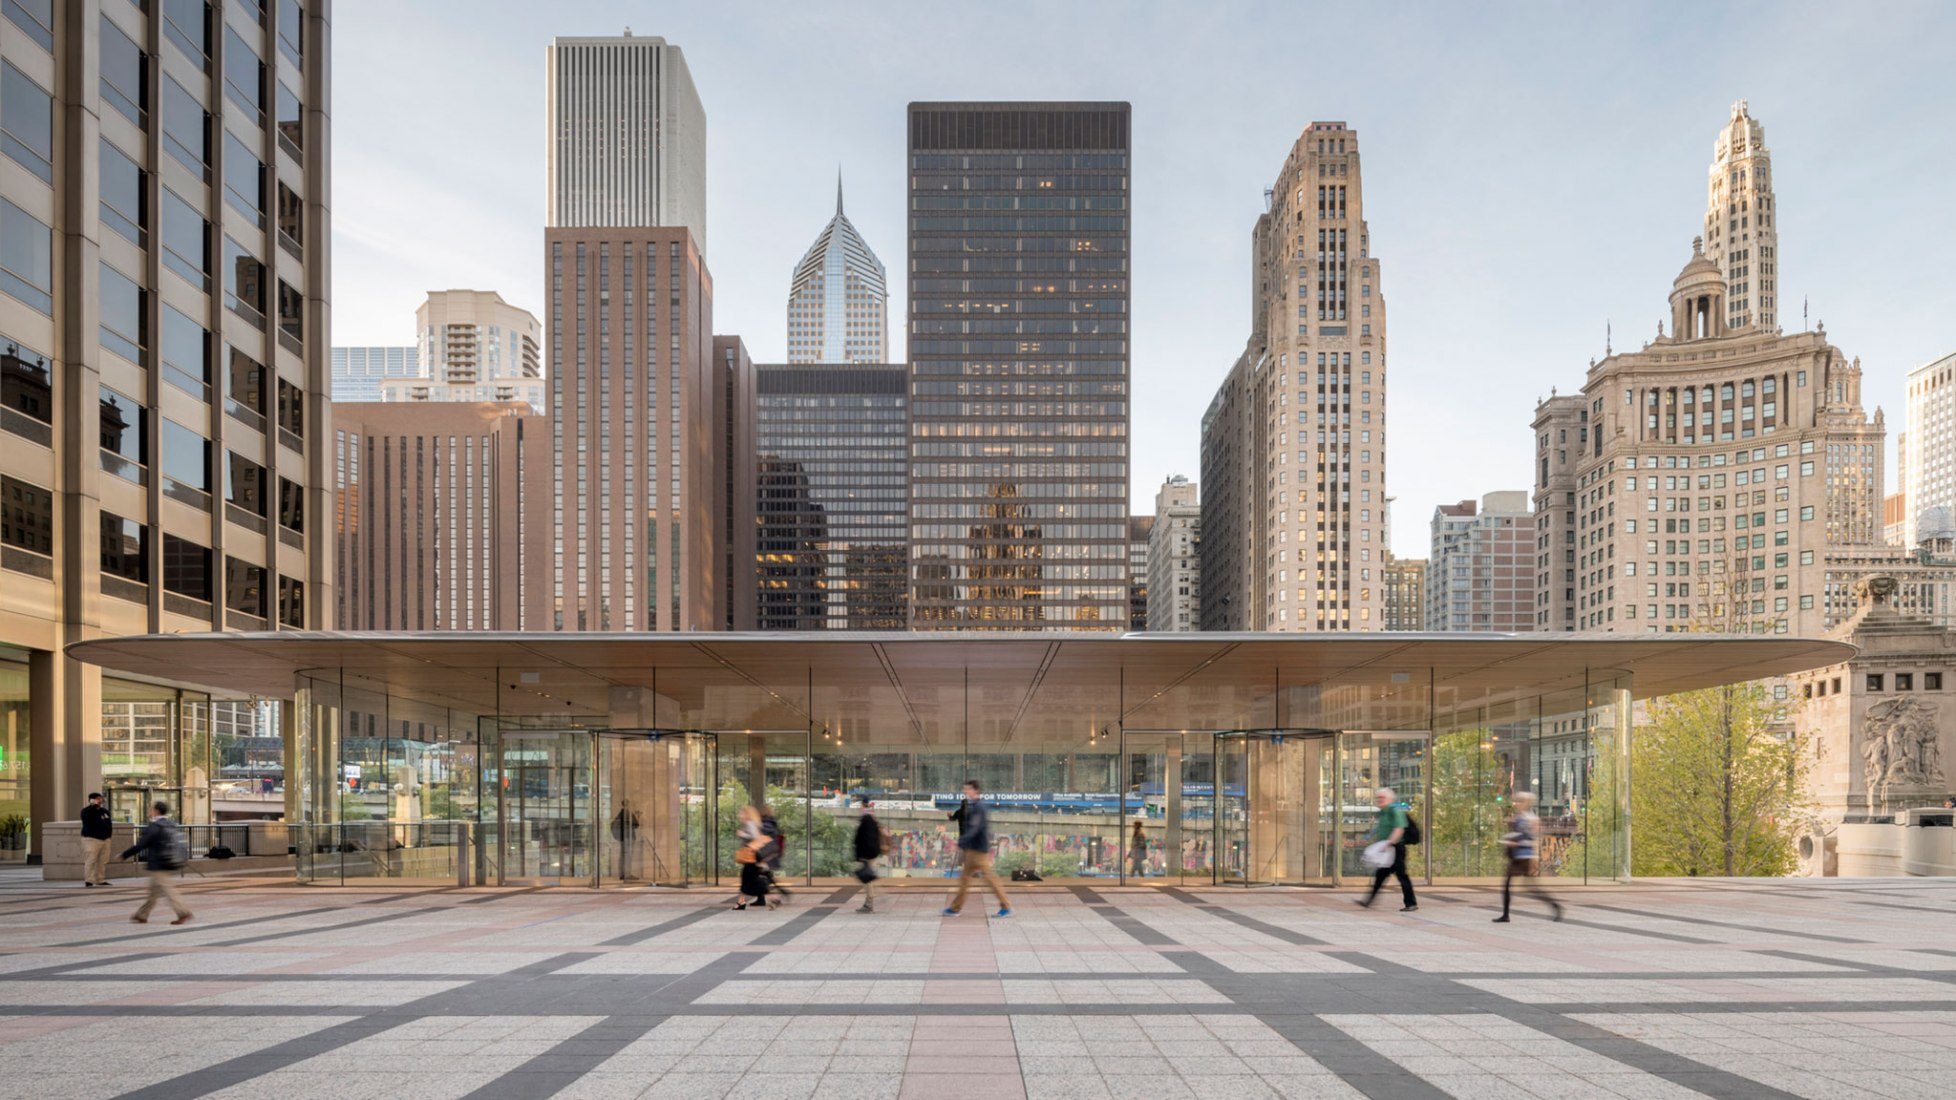 Apple Store Michigan Avenue, Chicago by Foster + Partners. Photograph © Nigel Young